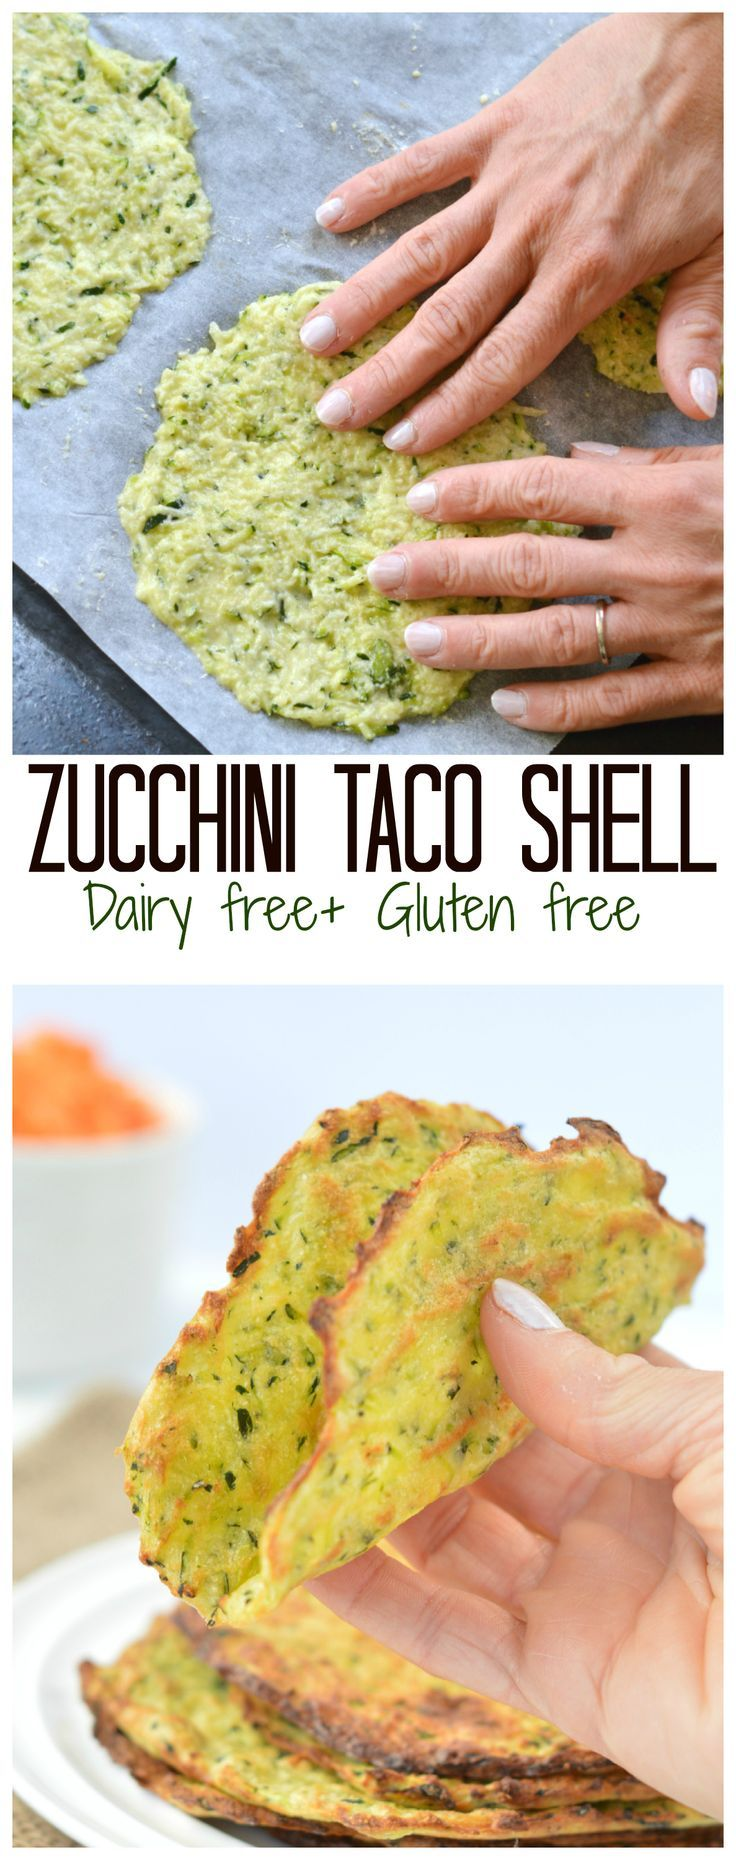 Those Zucchini Taco Shell are a super healthy soft taco idea for your next party!